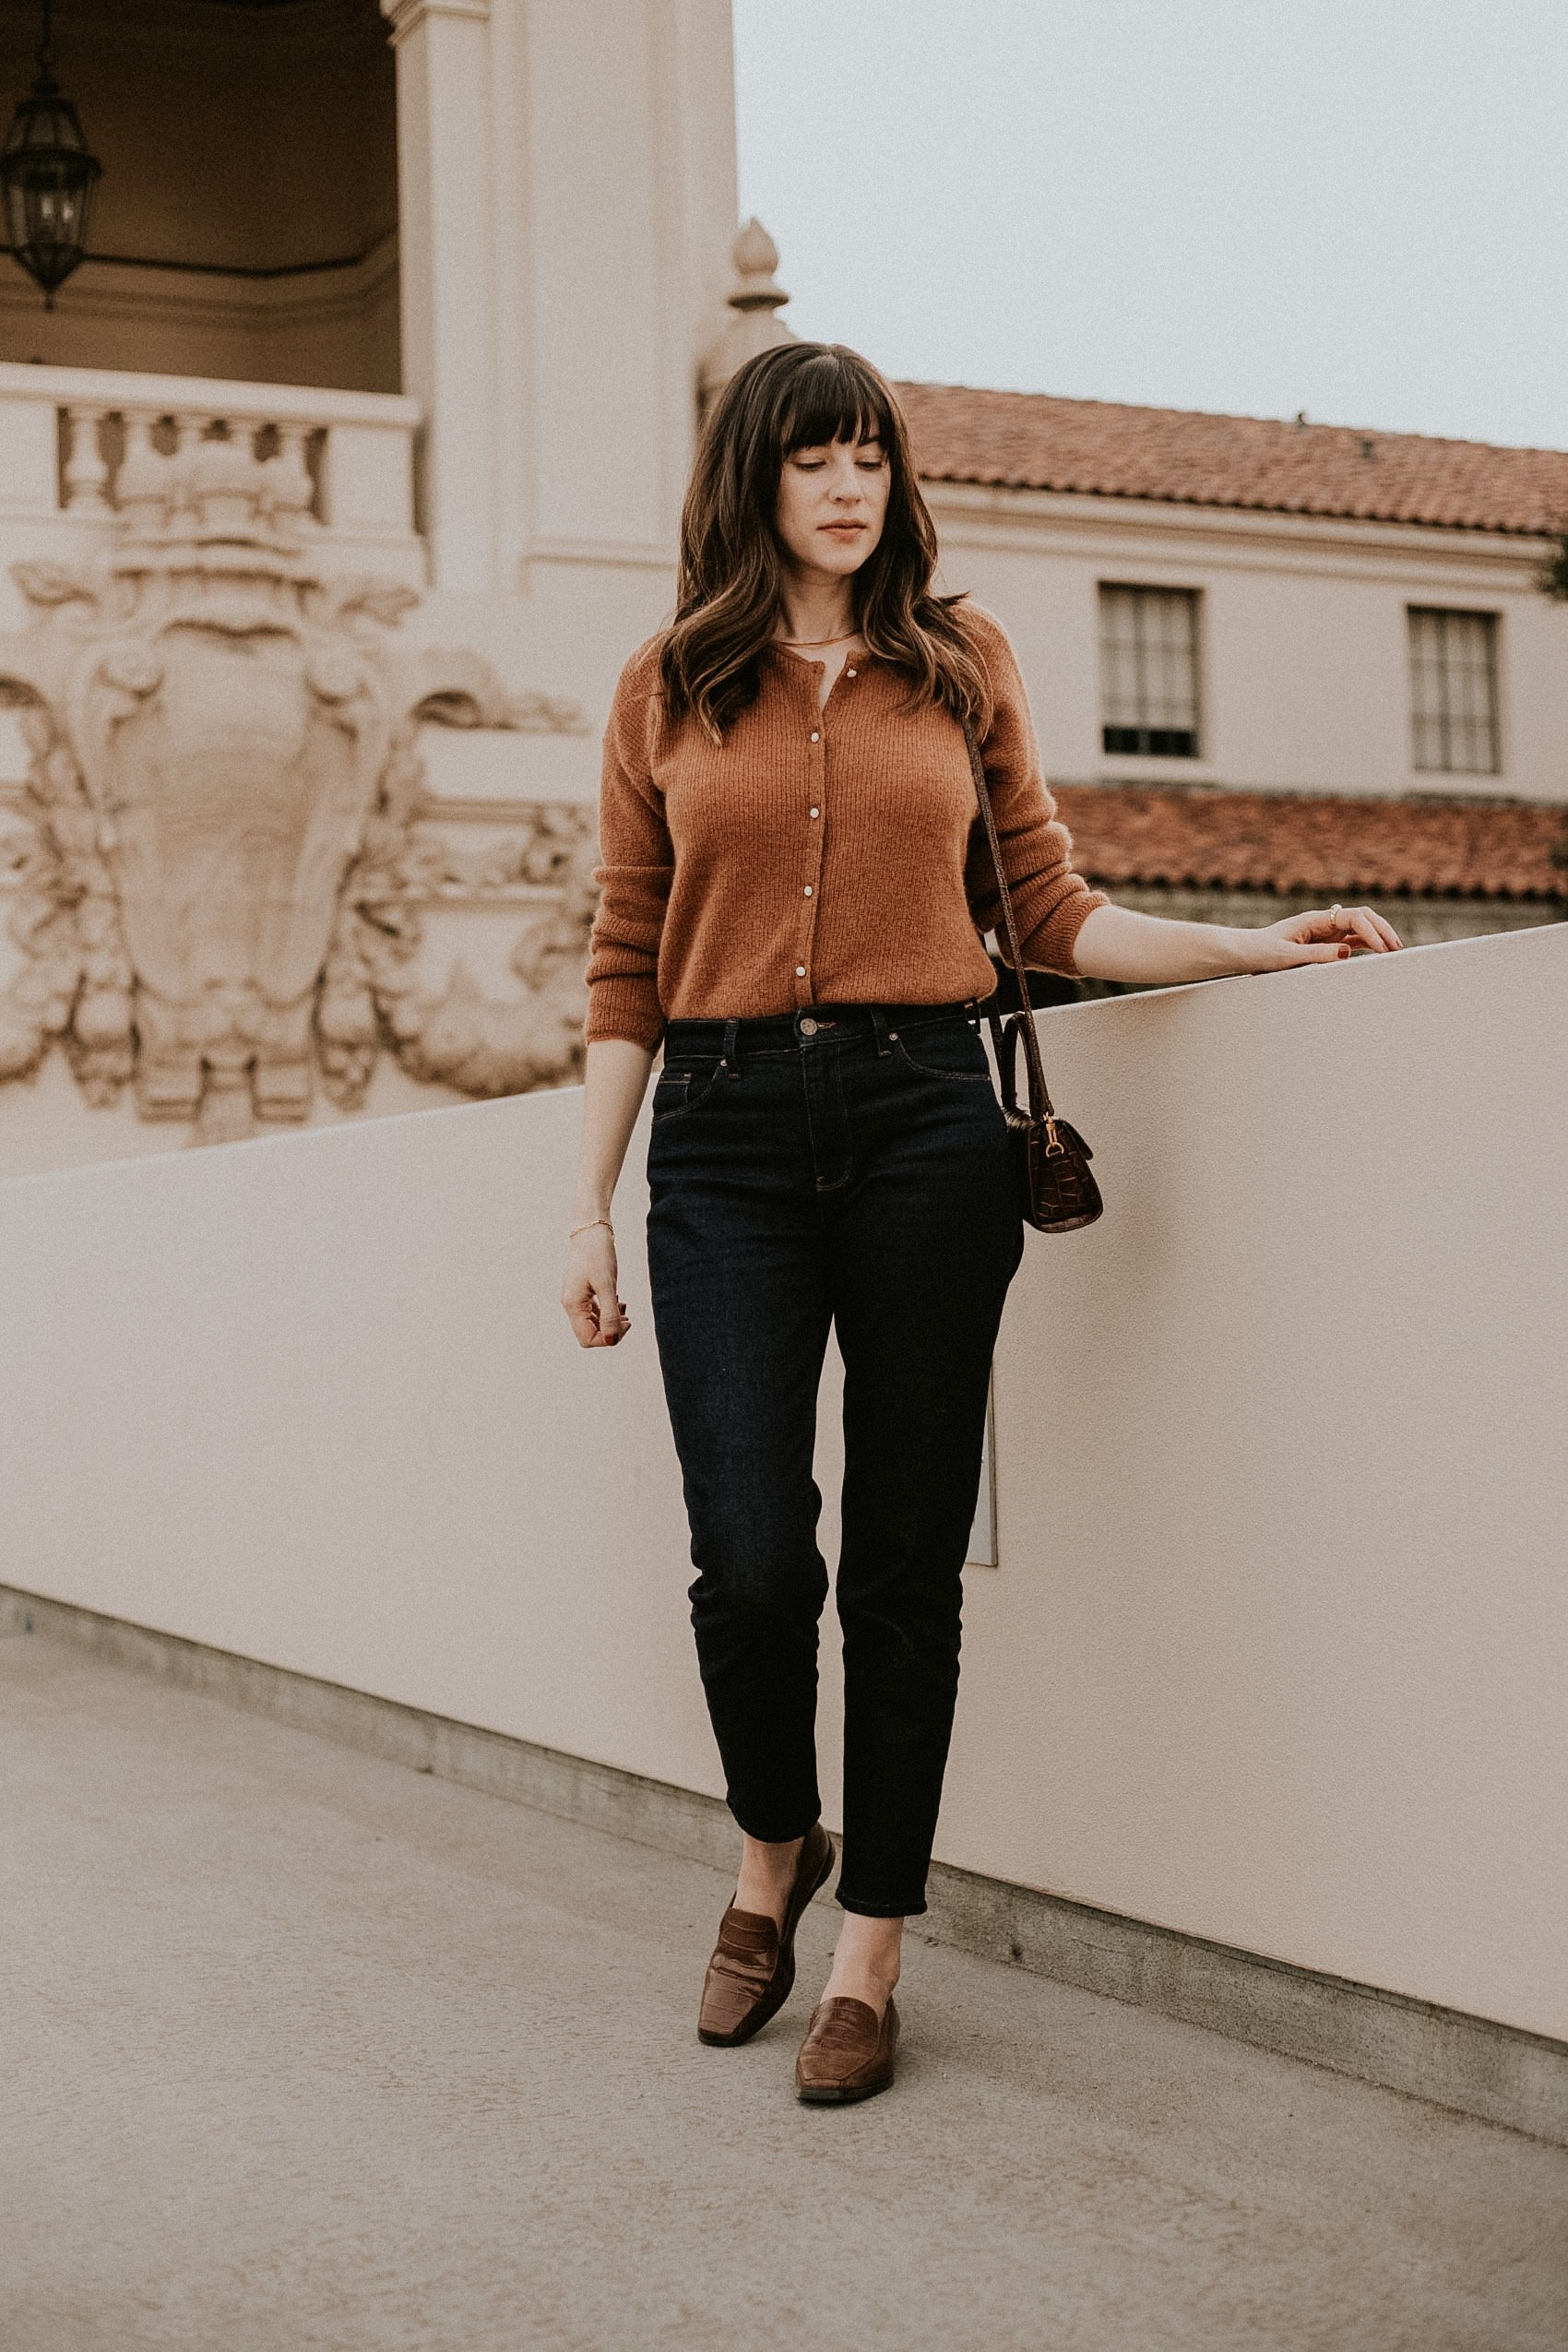 Sezane Gaspard Knit with Mott + Bow jeans and Everlane Loafers